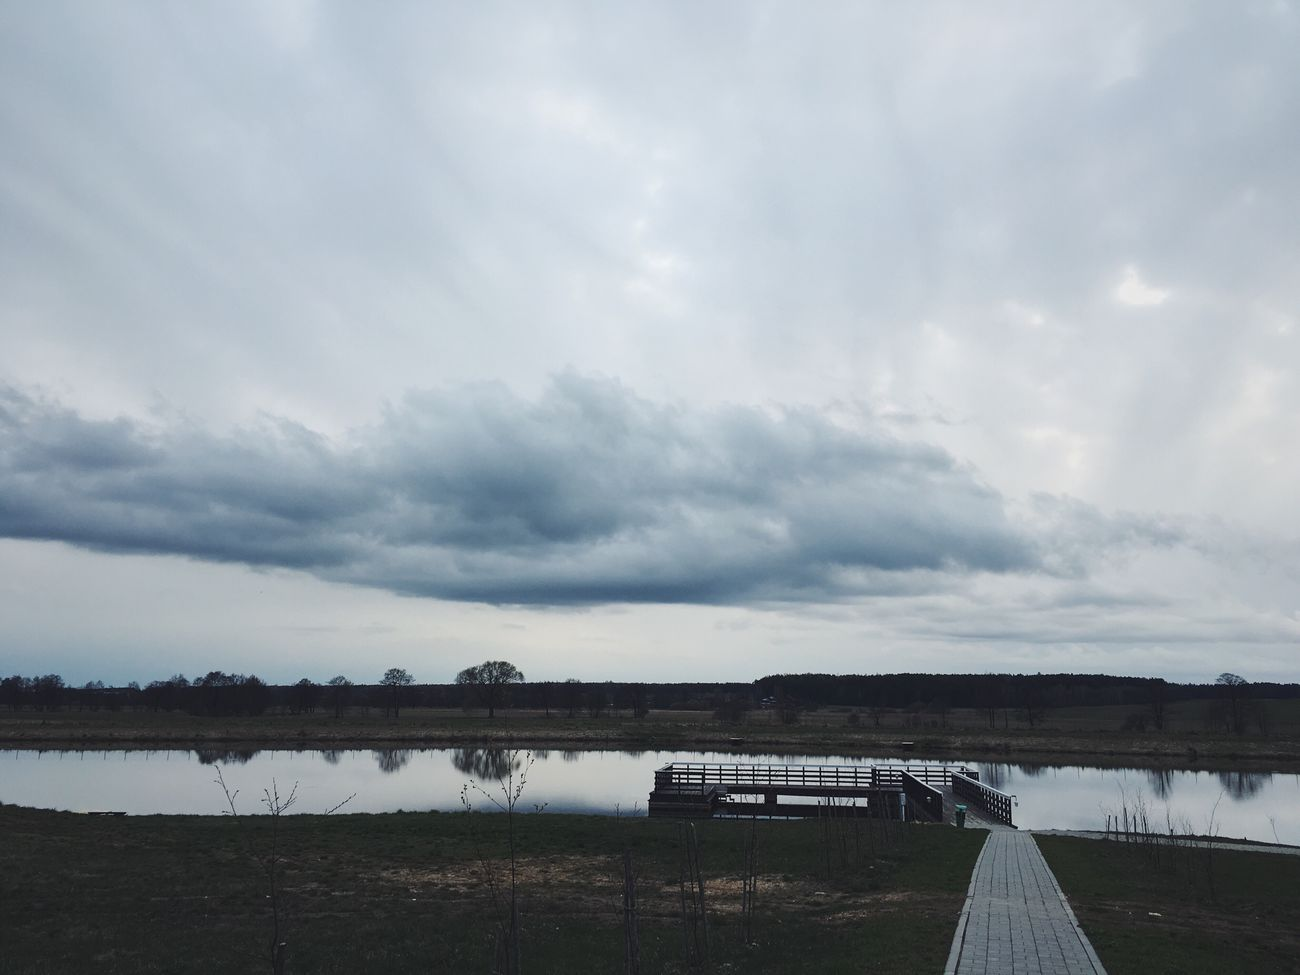 Cloud - Sky Water Sky Nature No People Lake Day Outdoors Scenics Bridge - Man Made Structure Tranquility Beauty In Nature Built Structure Landscape Architecture